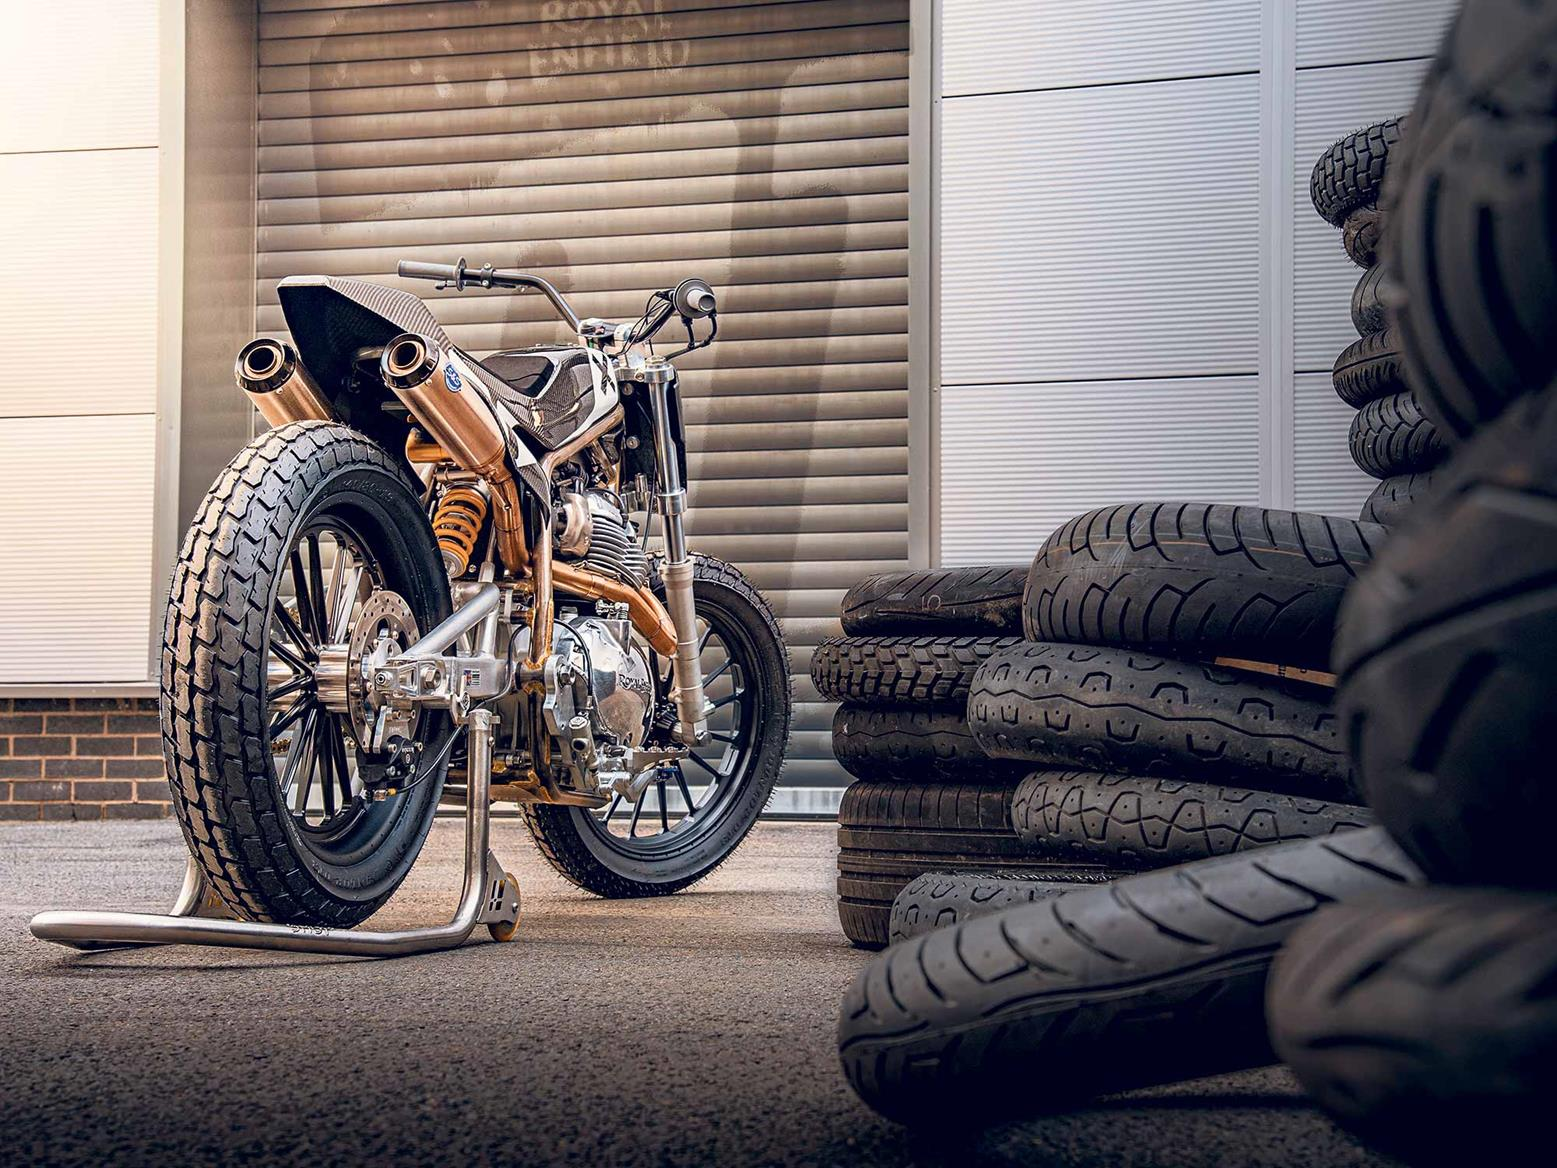 Royal Enfield flattracker parked by tyres